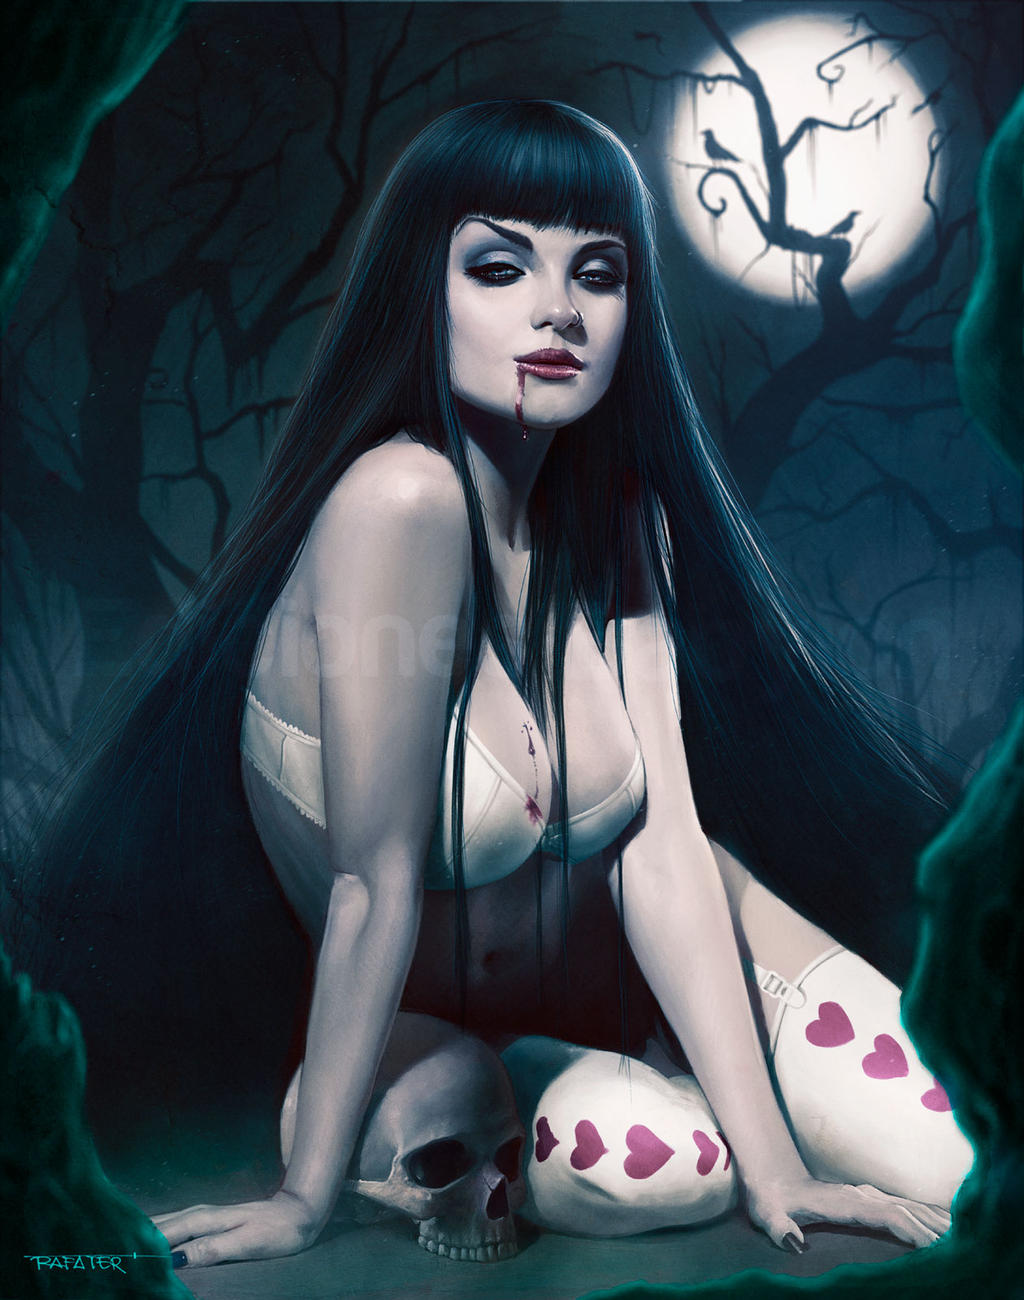 Vampire erotic digital art